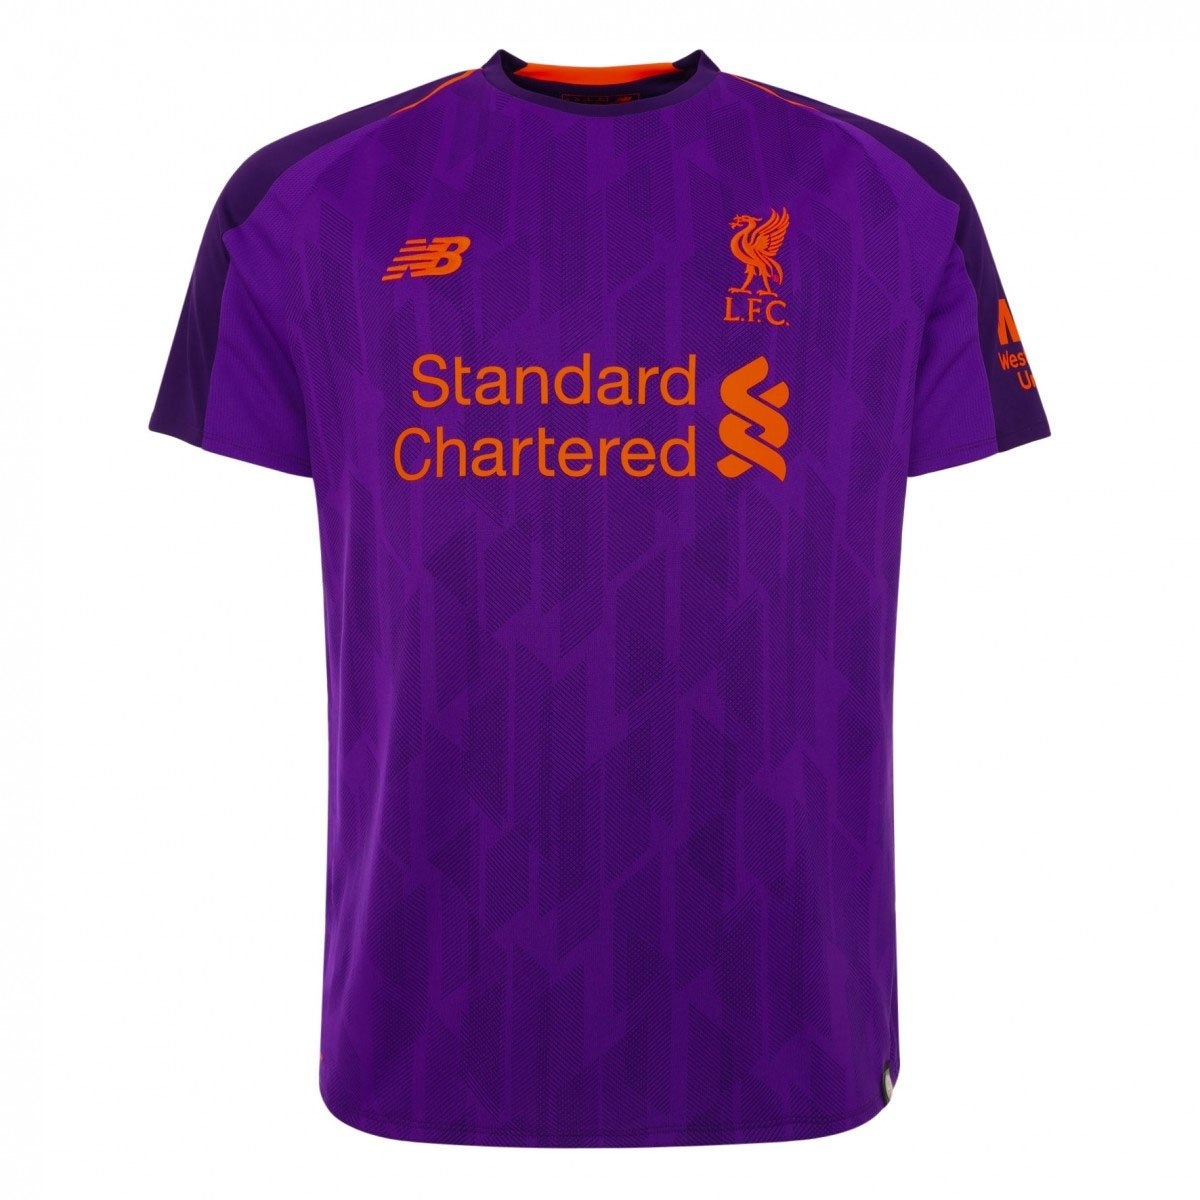 super popular 3cf0a 2f3d1 Amazon.com: Liverpool Kid's 2018/2019 Away Soccer Jersey ...